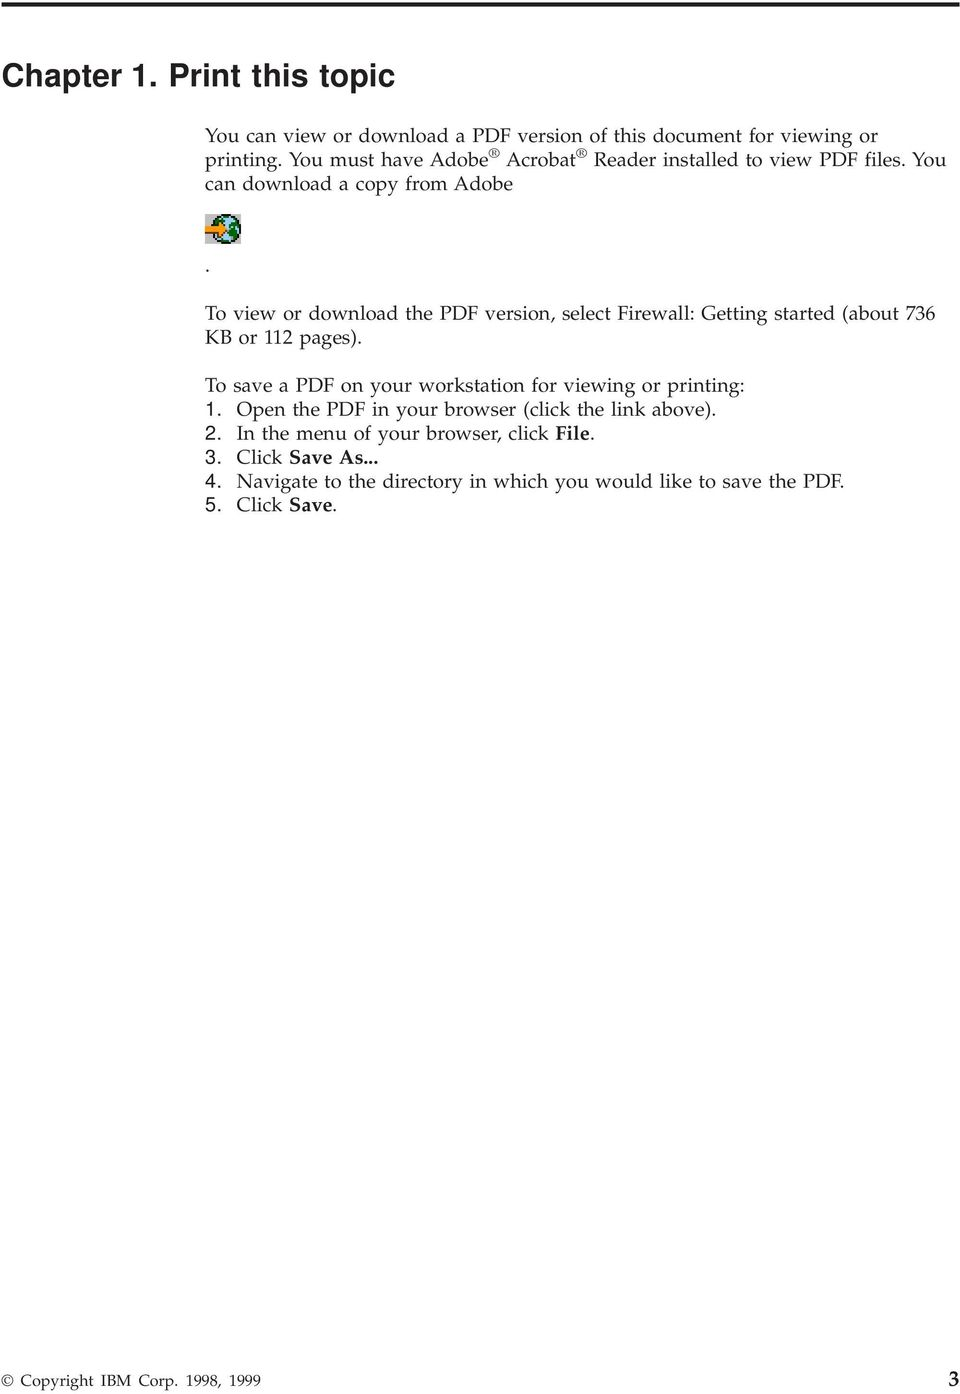 To view or download the PDF version, select Firewall: Getting started (about 736 KB or 112 pages).